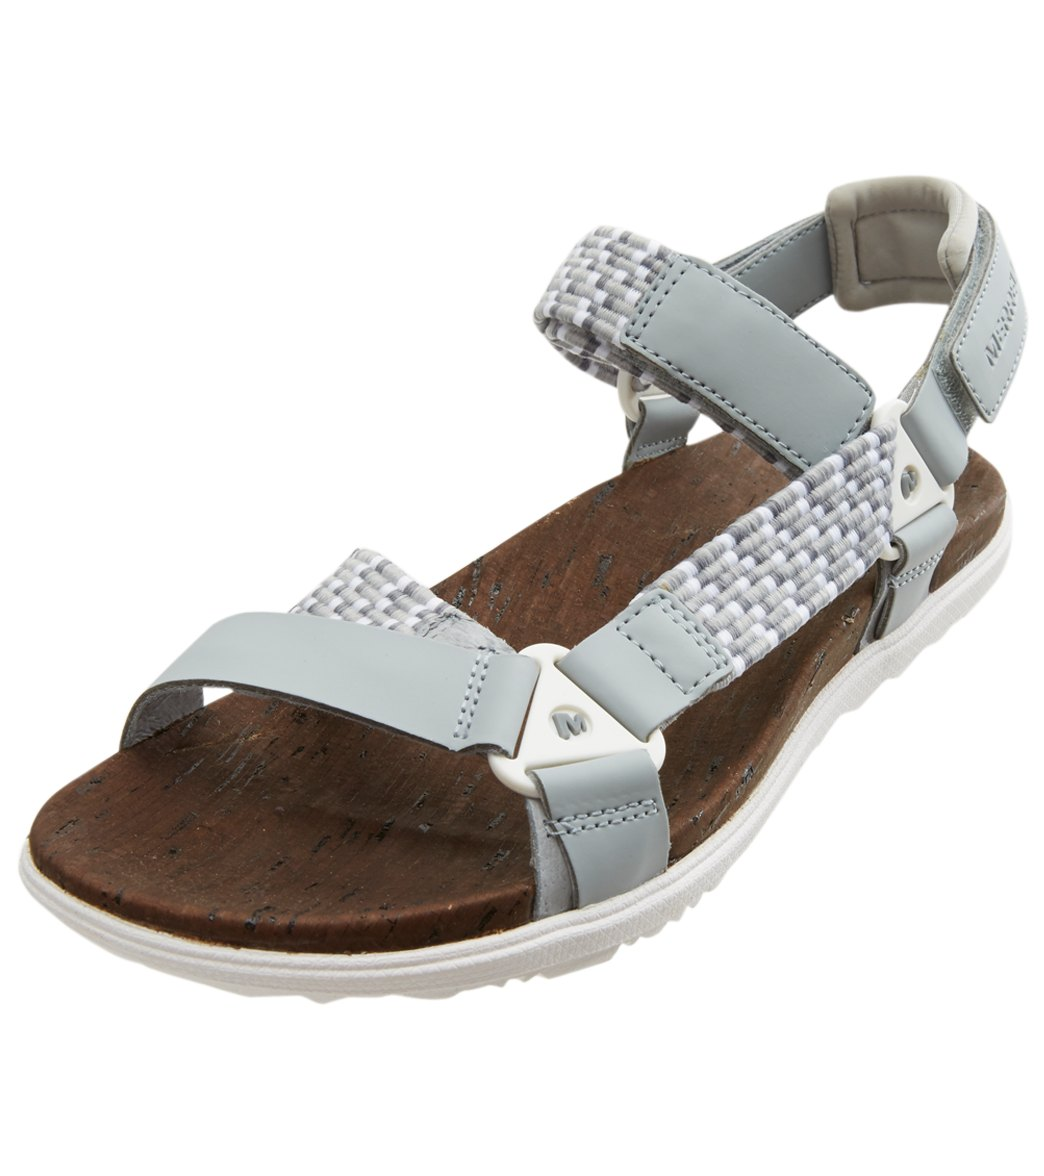 3f34e96c3 Merrell Women s Around Town Sunvue Woven Sandal at SwimOutlet.com - Free  Shipping